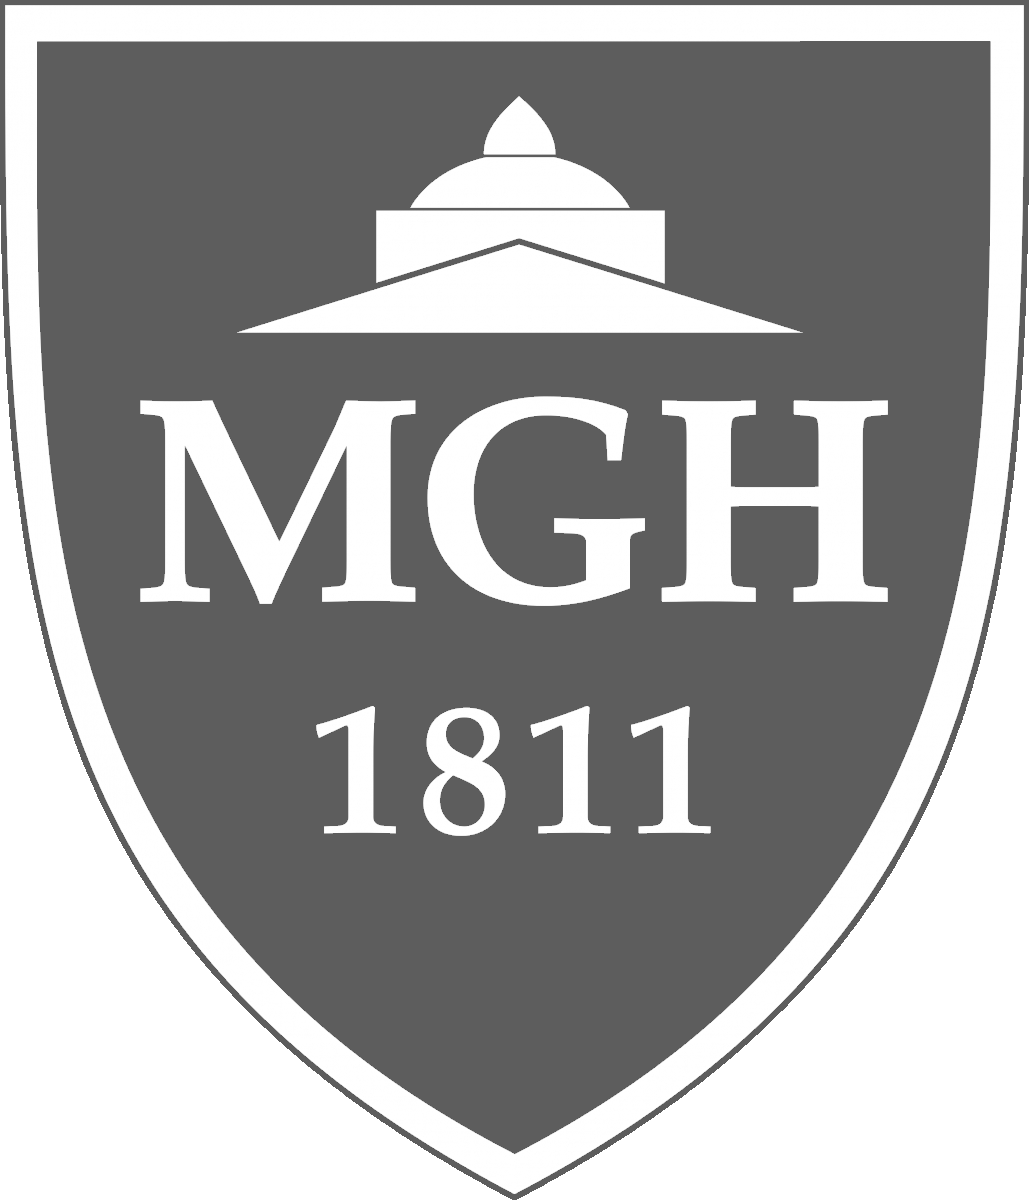 MGH logo black and white